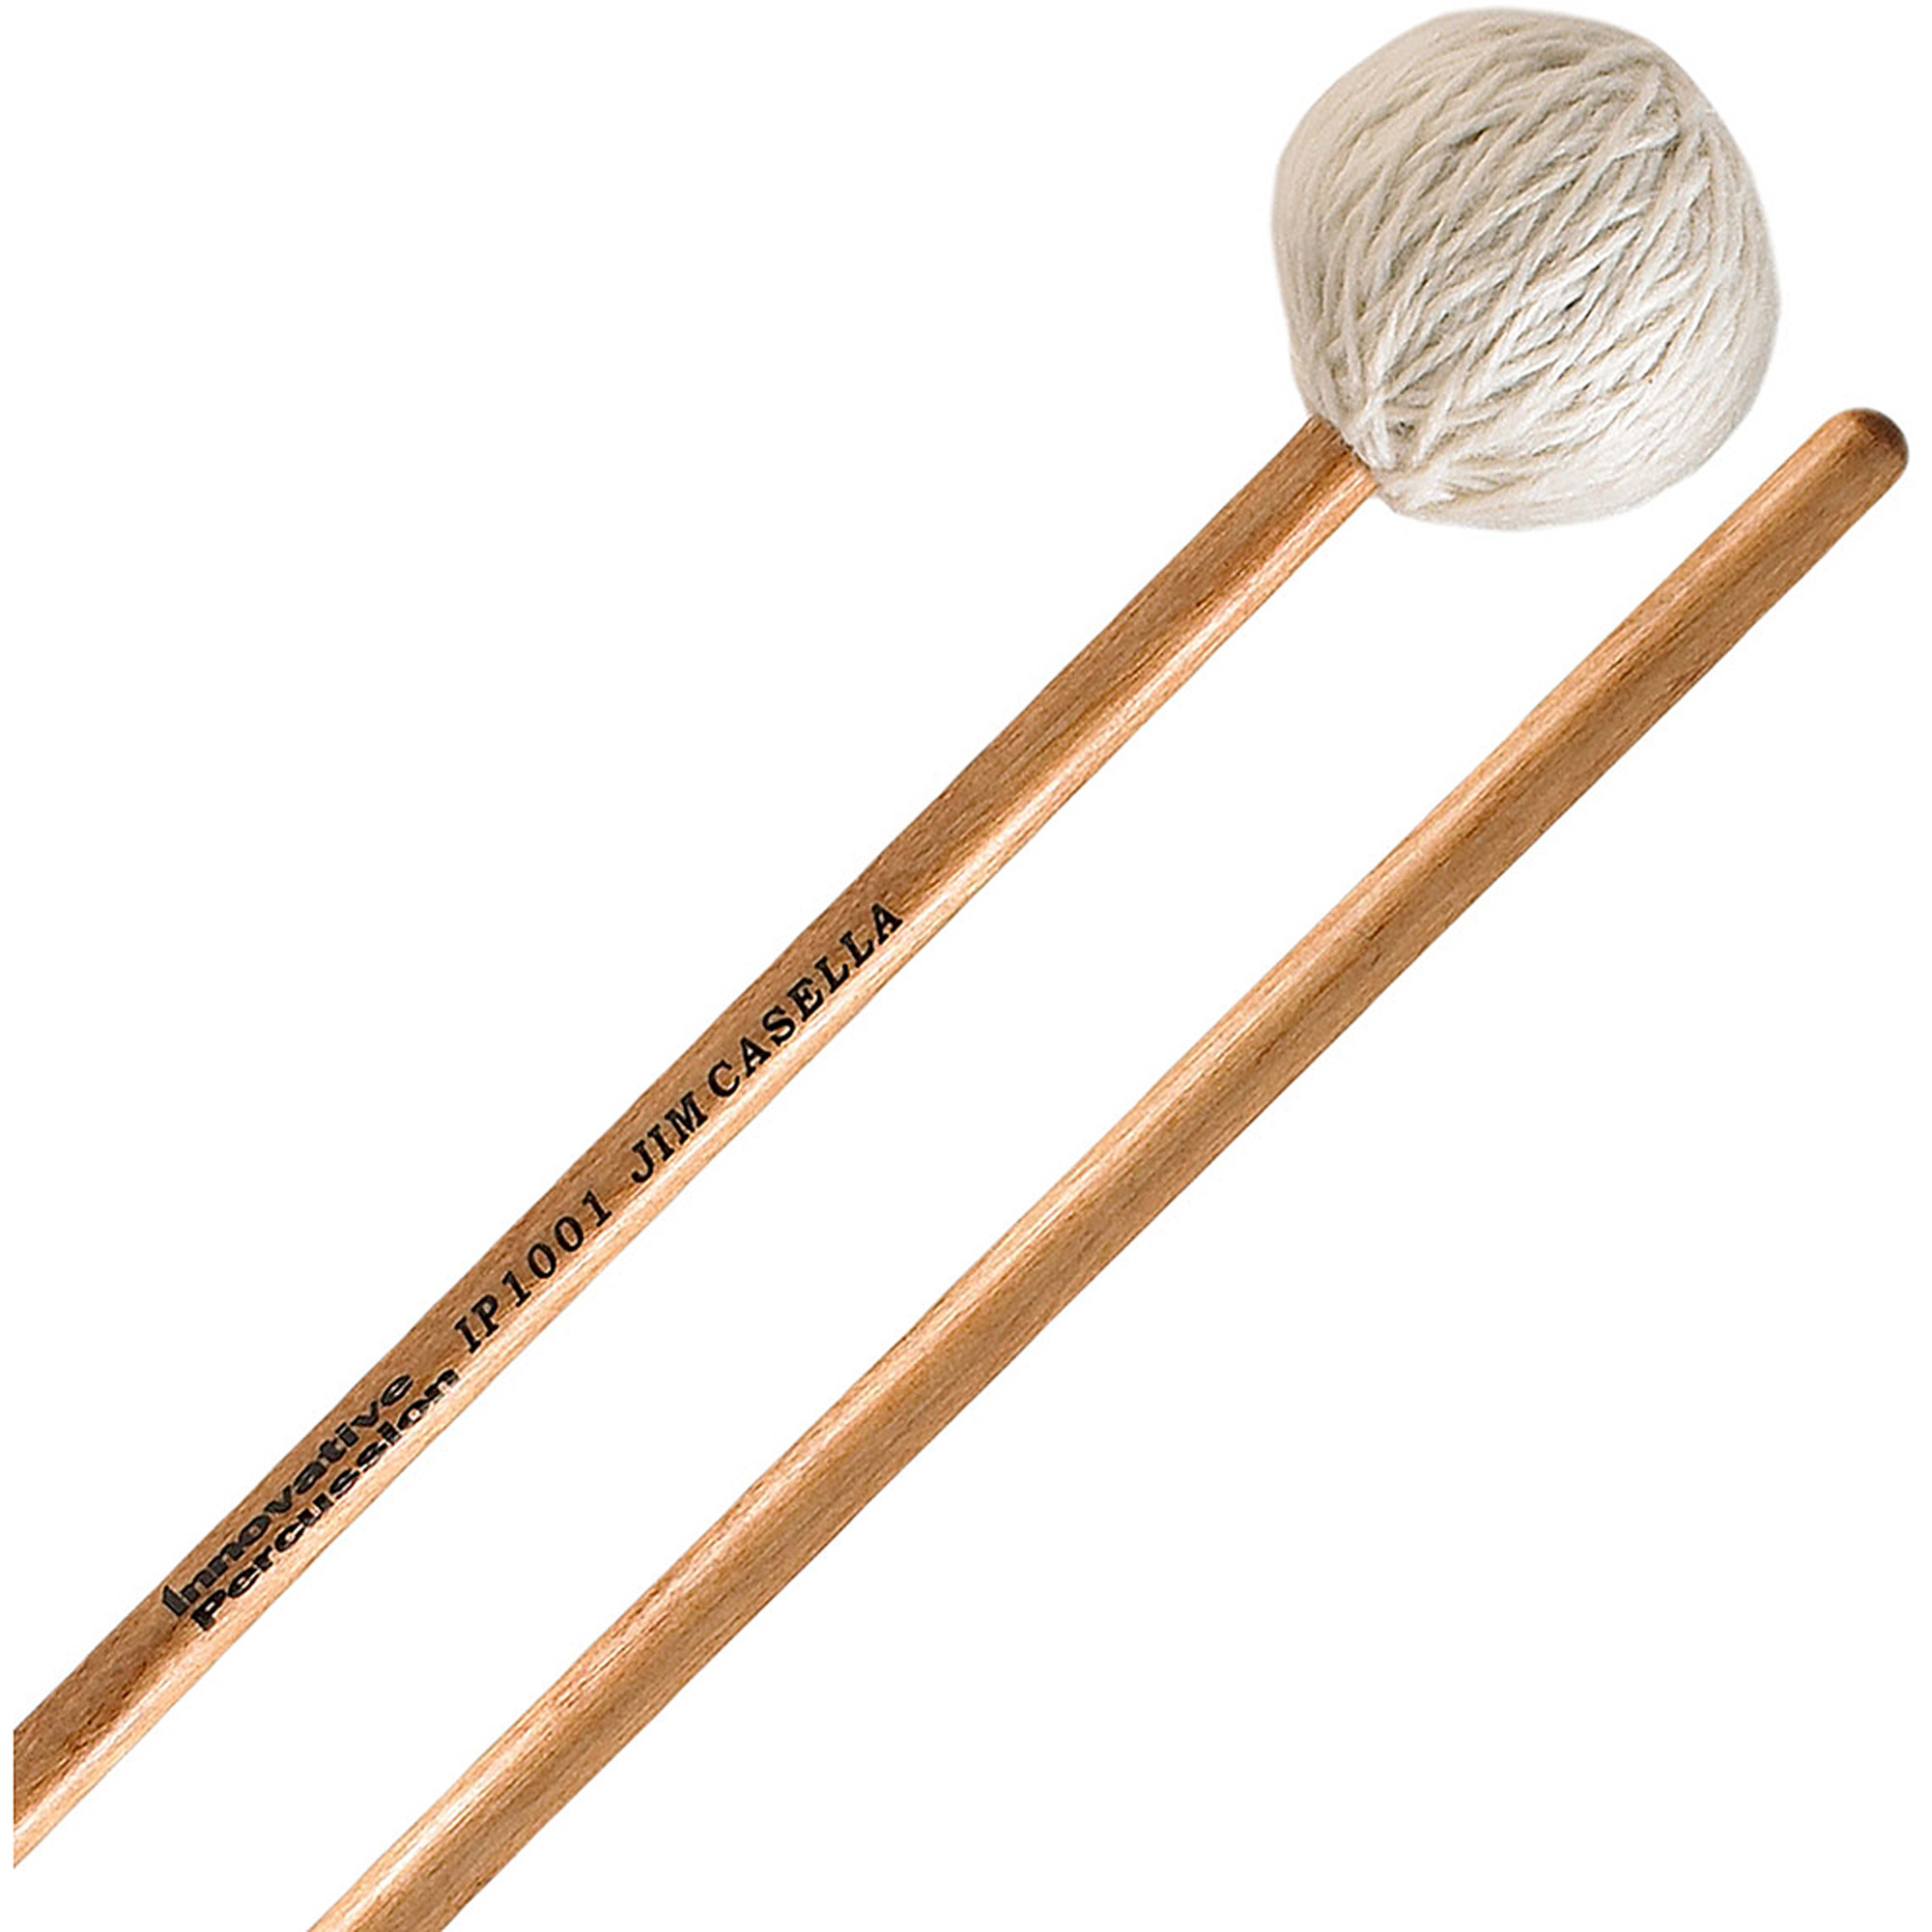 Innovative Percussion IP1001 Jim Casella Series Soft Marimba Mallets w/ Birch Handles